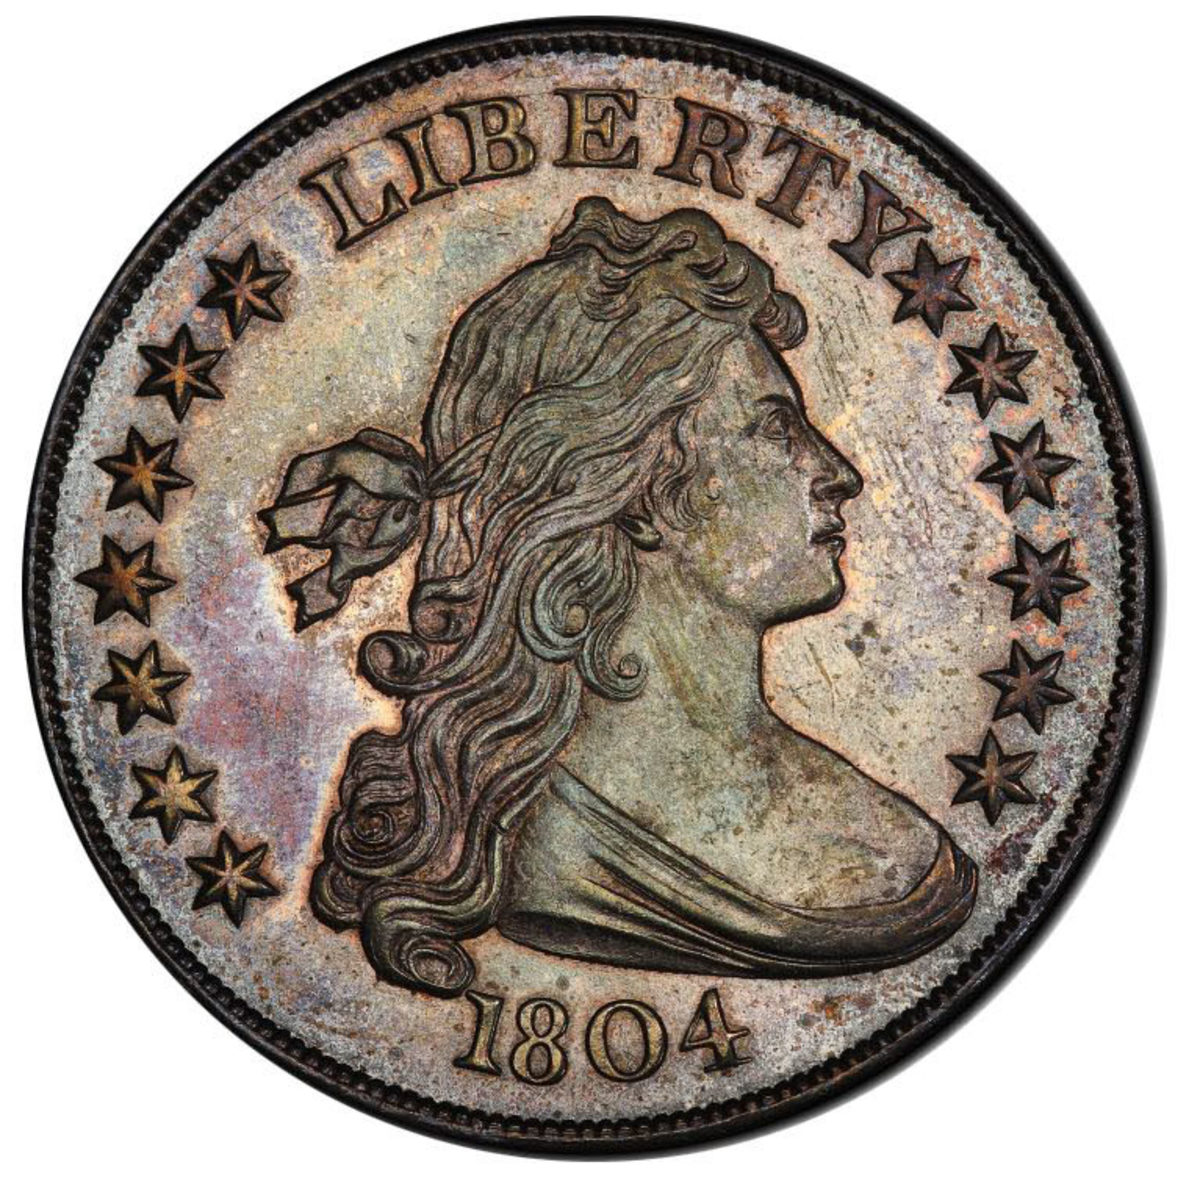 This 1804 dollar, another standout in the auction, has an estimated value of $4 million.